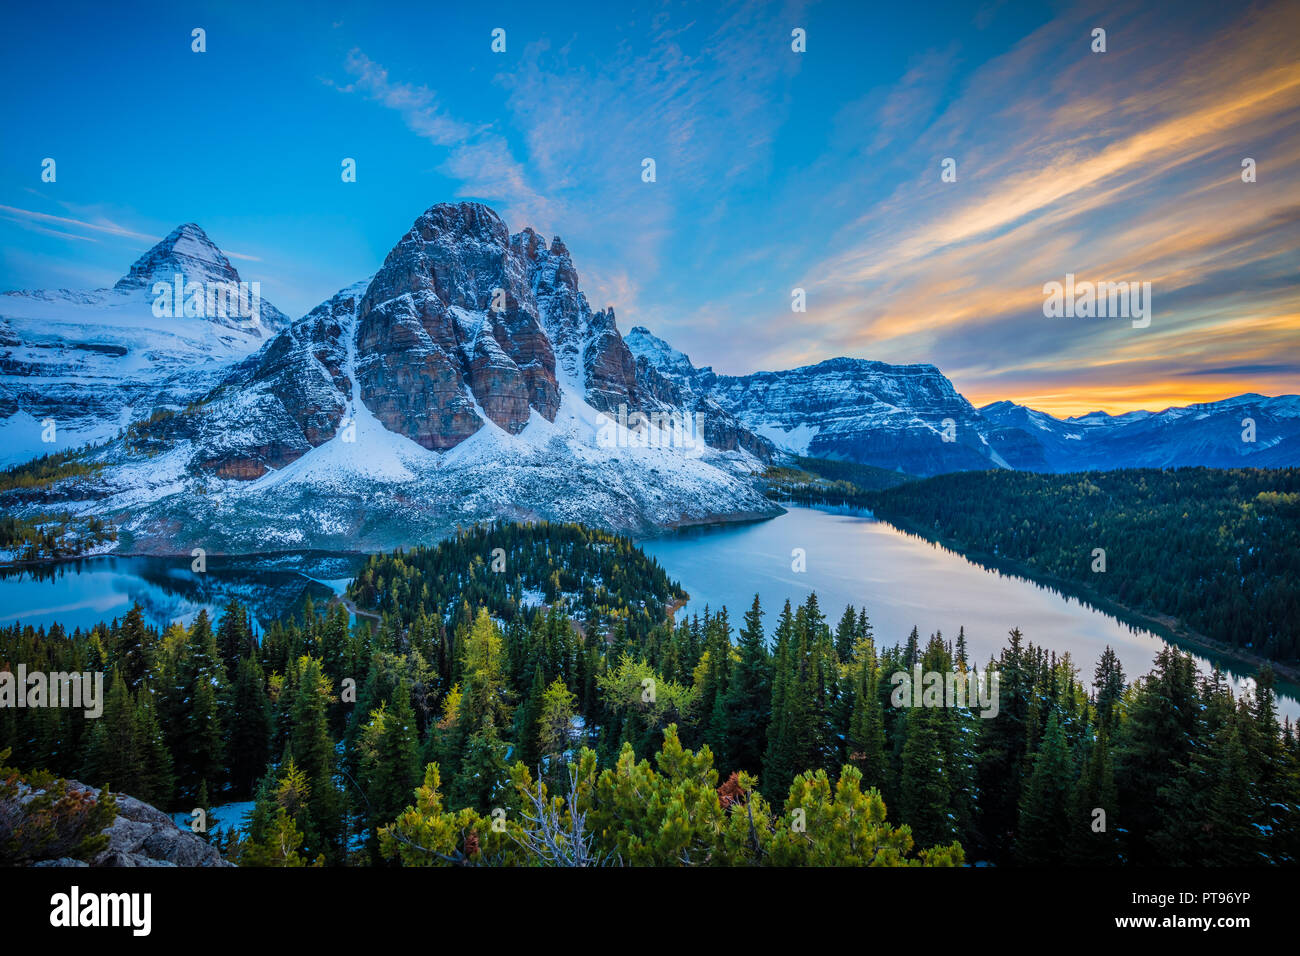 Mount Assiniboine Provincial Park is a provincial park in British Columbia, Canada, located around Mount Assiniboine. The park was established 1922. S - Stock Image